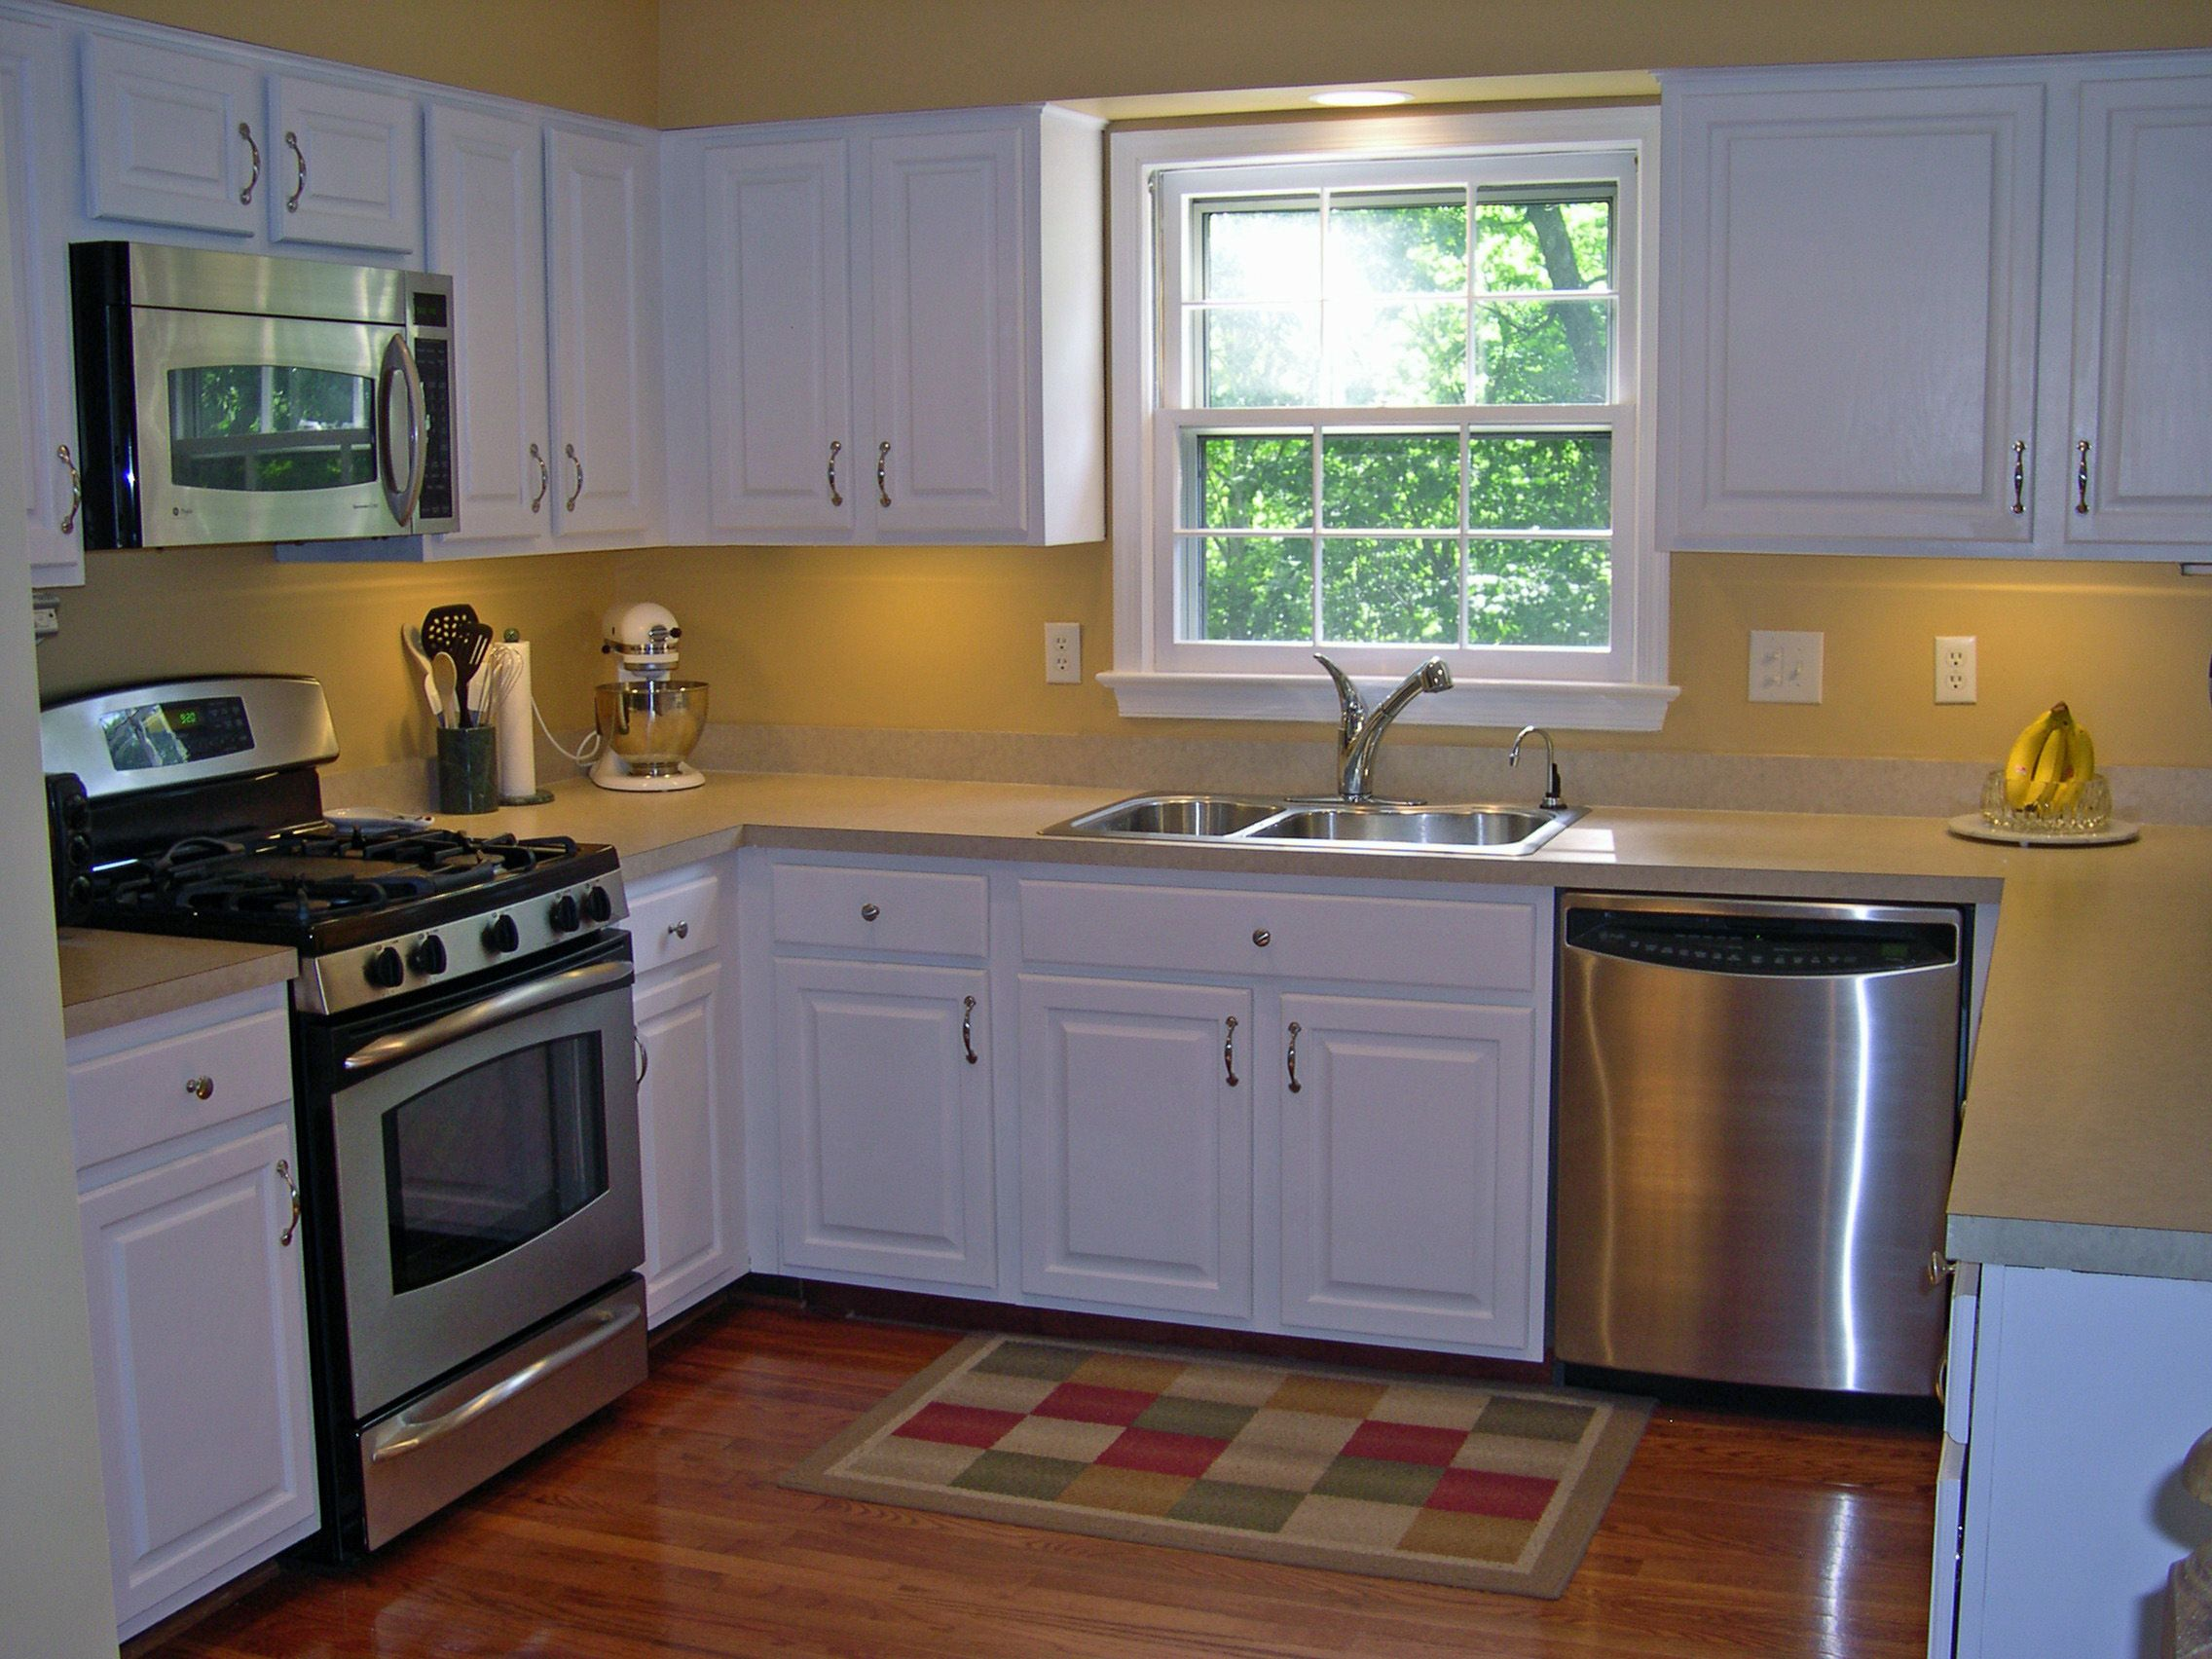 Small Kitchen Remodel Design Amazing Small Kitchen Remodeling Ideas  Small Kitchen Remodel Ideas Review